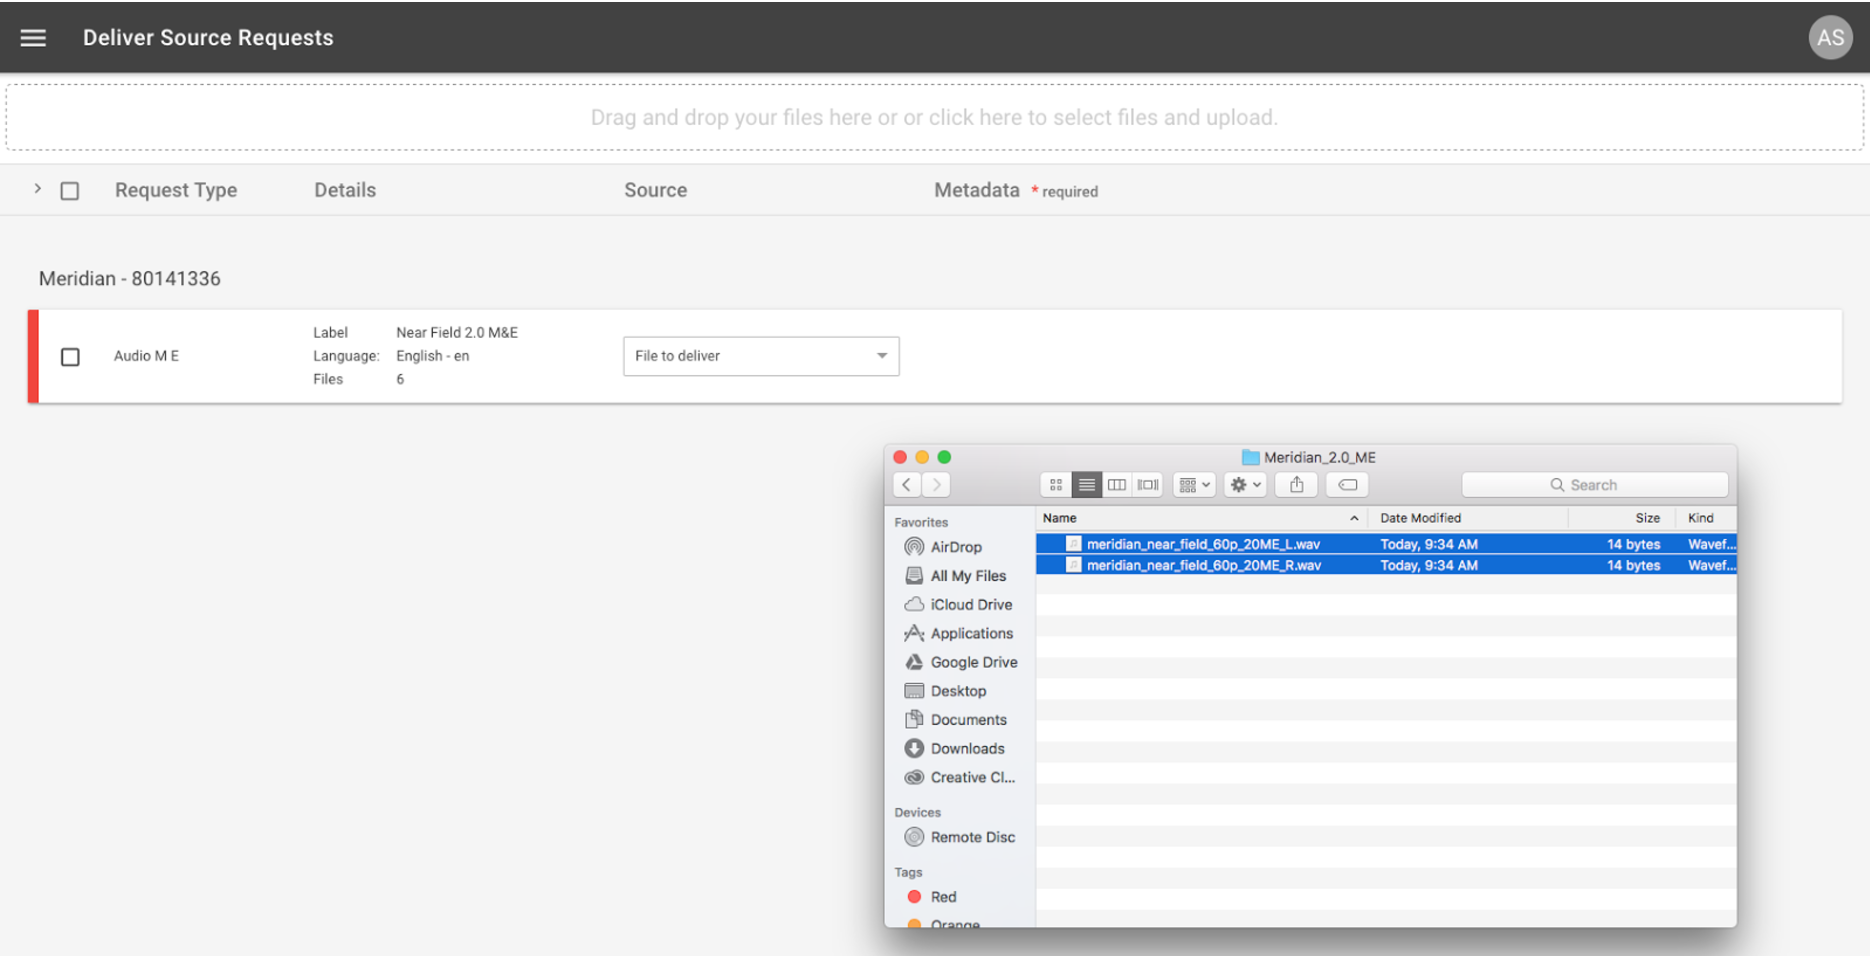 5 This Will Direct To The Source Delivery Ui, Which You Can Drag And Drop  Files To Upload